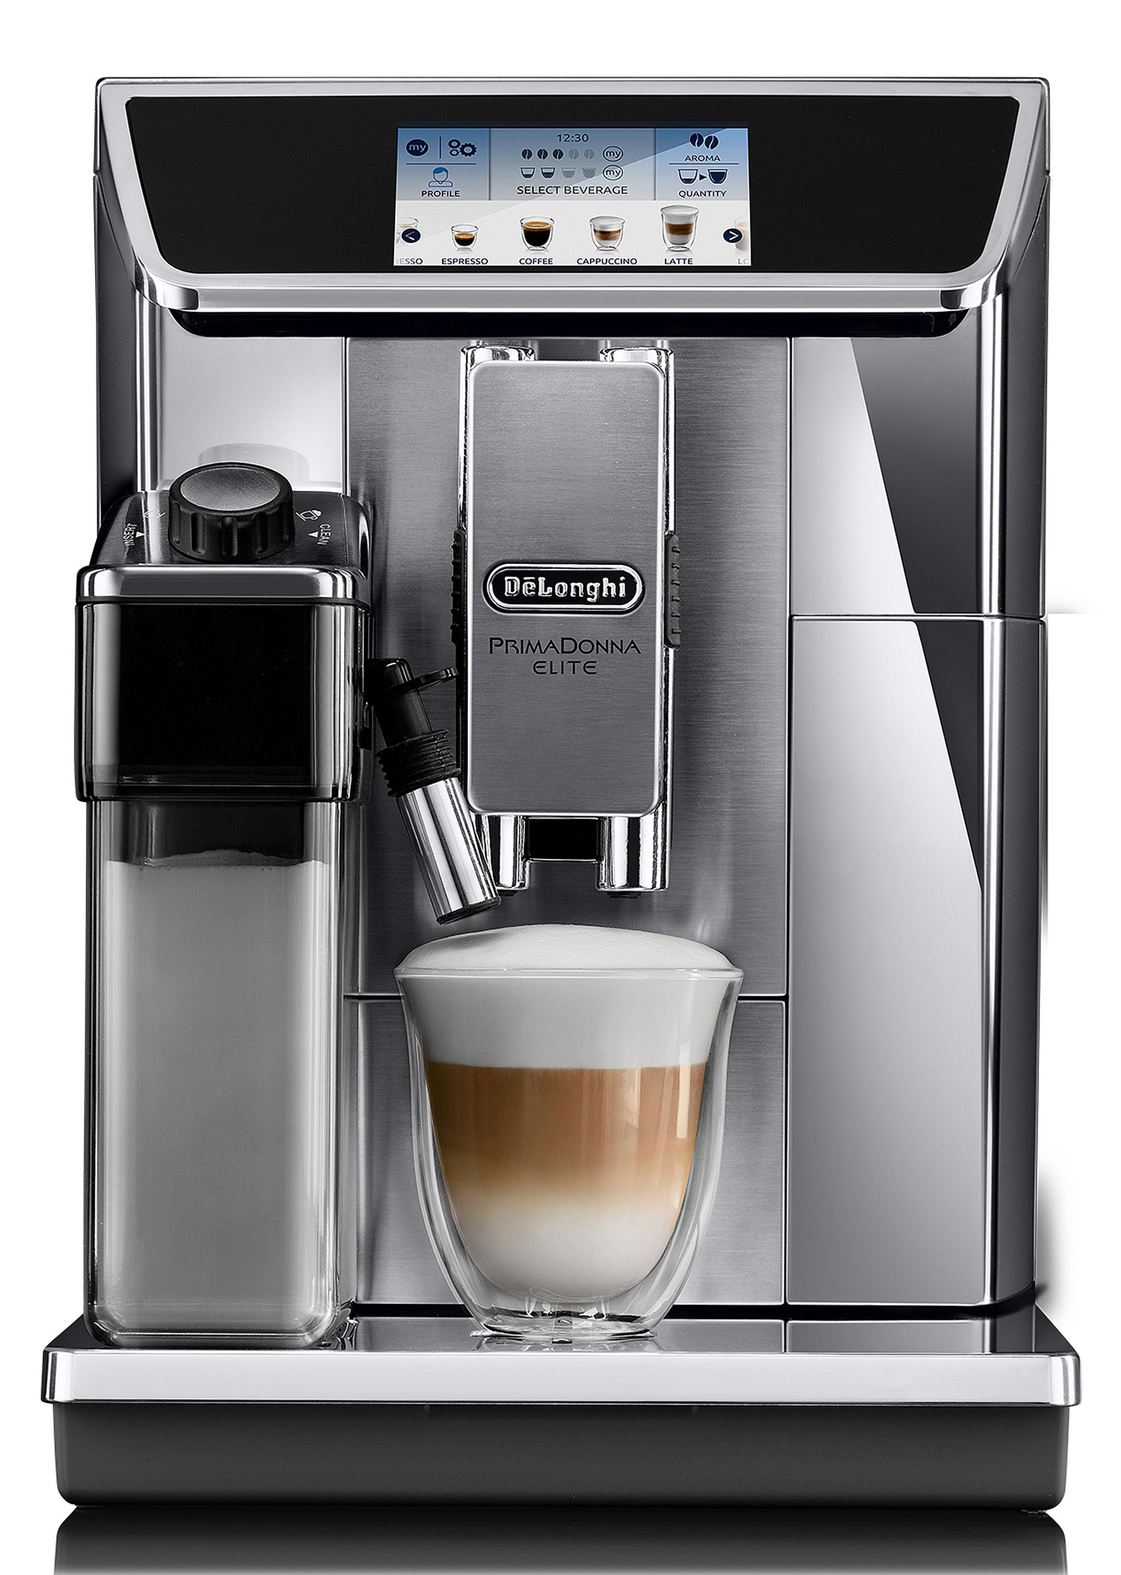 de longhi kaffeemaschine primadonna elite ecam 656 interaktiv app 2 modelle. Black Bedroom Furniture Sets. Home Design Ideas